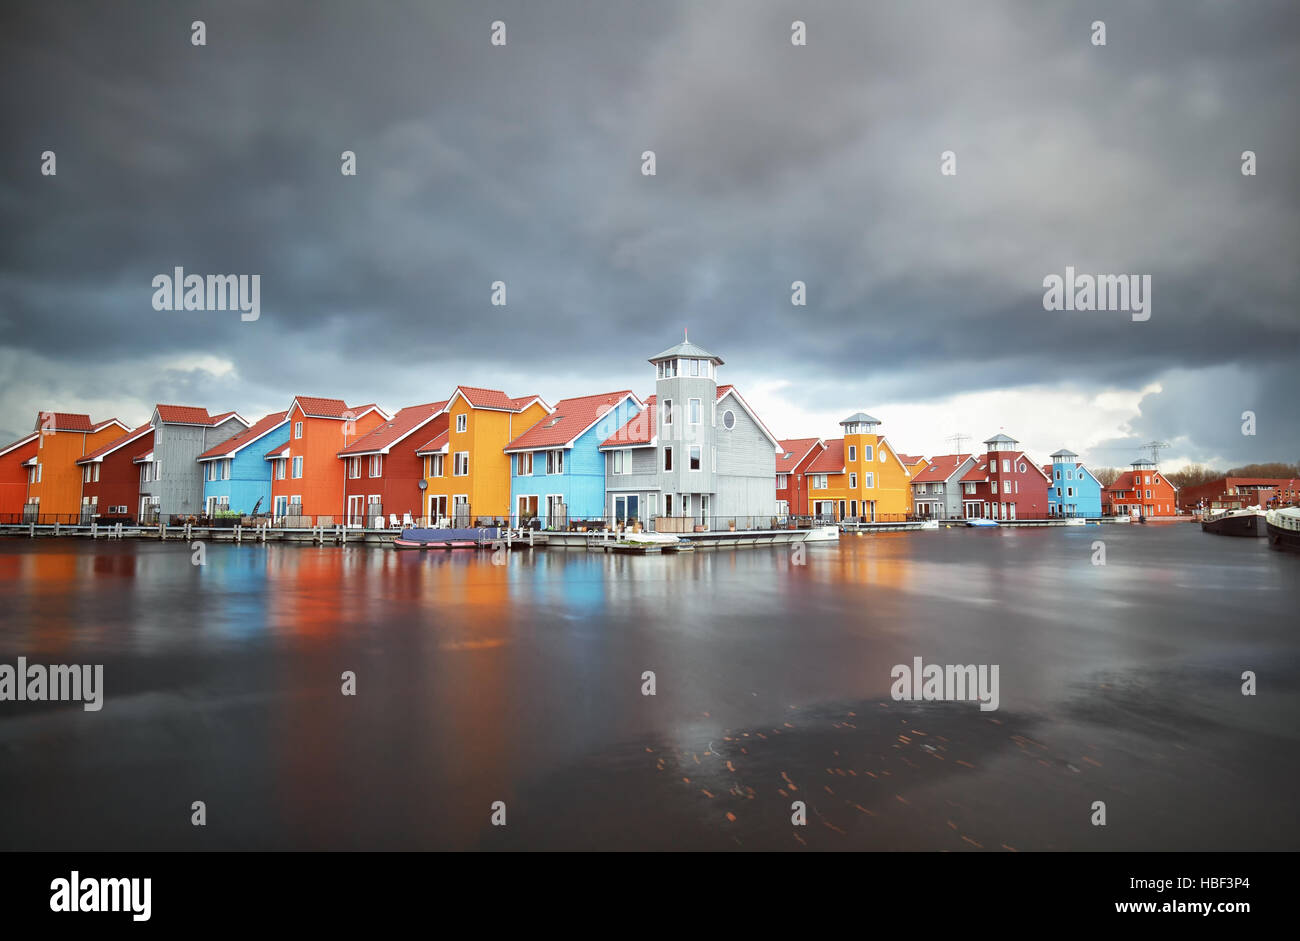 colorful buildings on water during storm - Stock Image